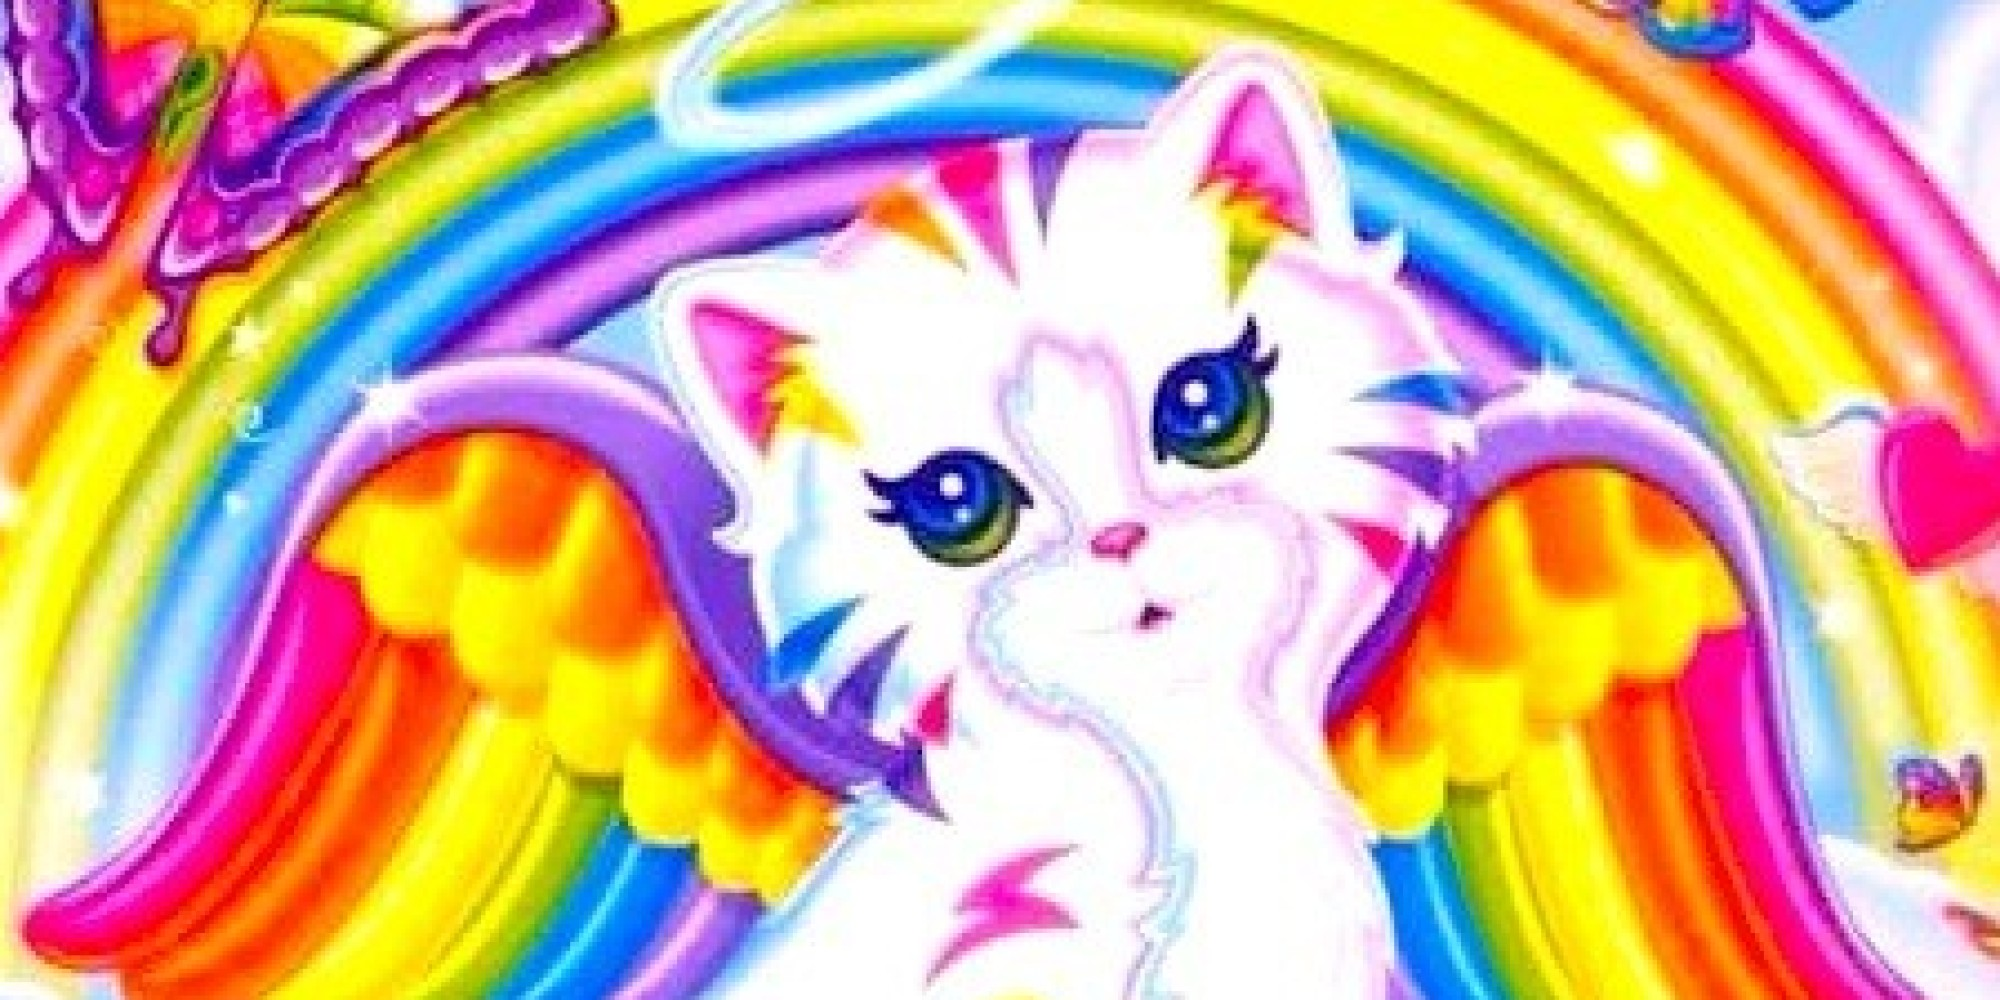 78 Lisa Frank Wallpaper On Wallpapersa 882312 Png Images Pngio